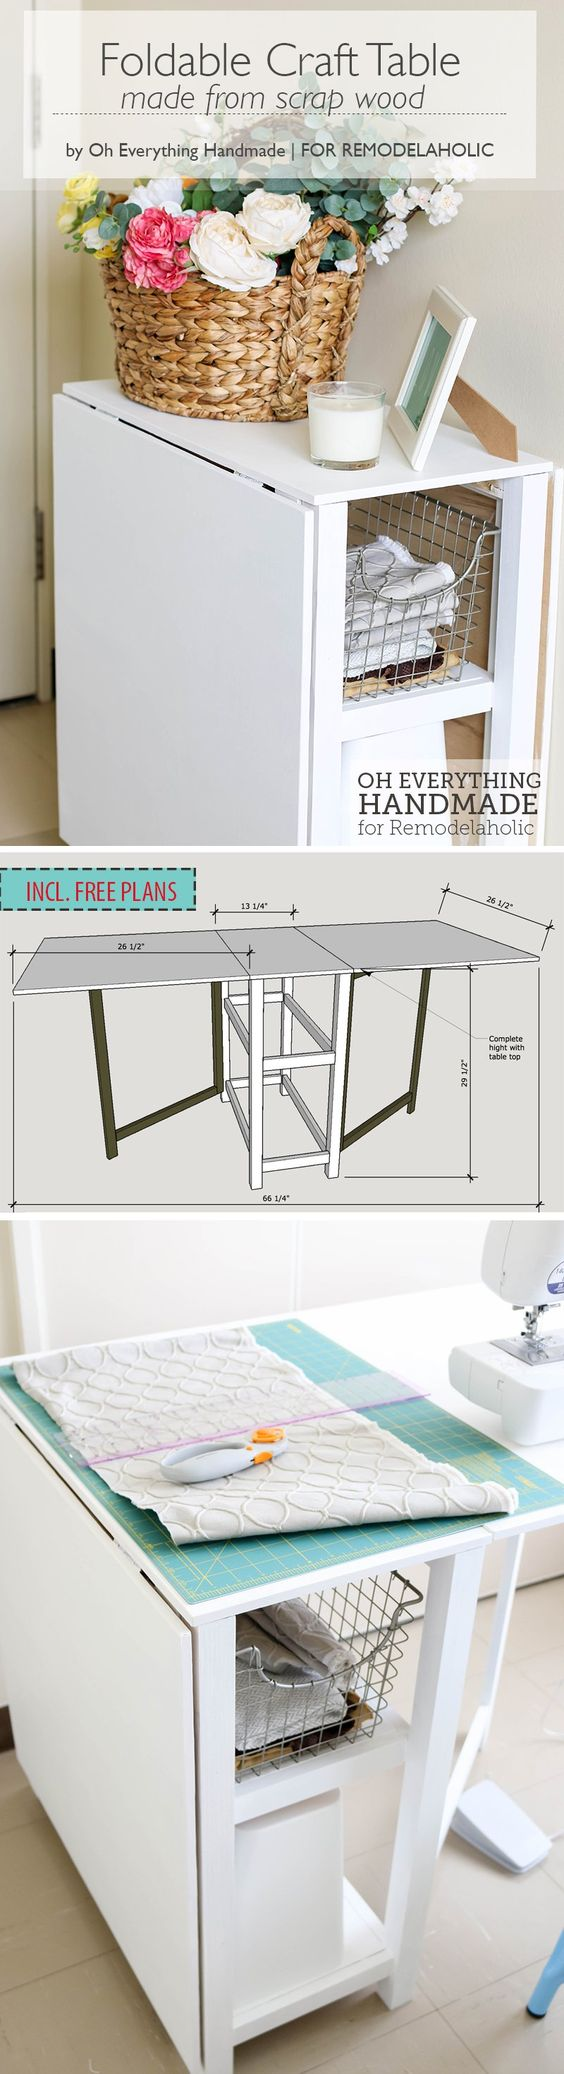 Make your small craft area work with this space-conscious DIY foldable craft  table, built from inexpensive materials or even scraps.